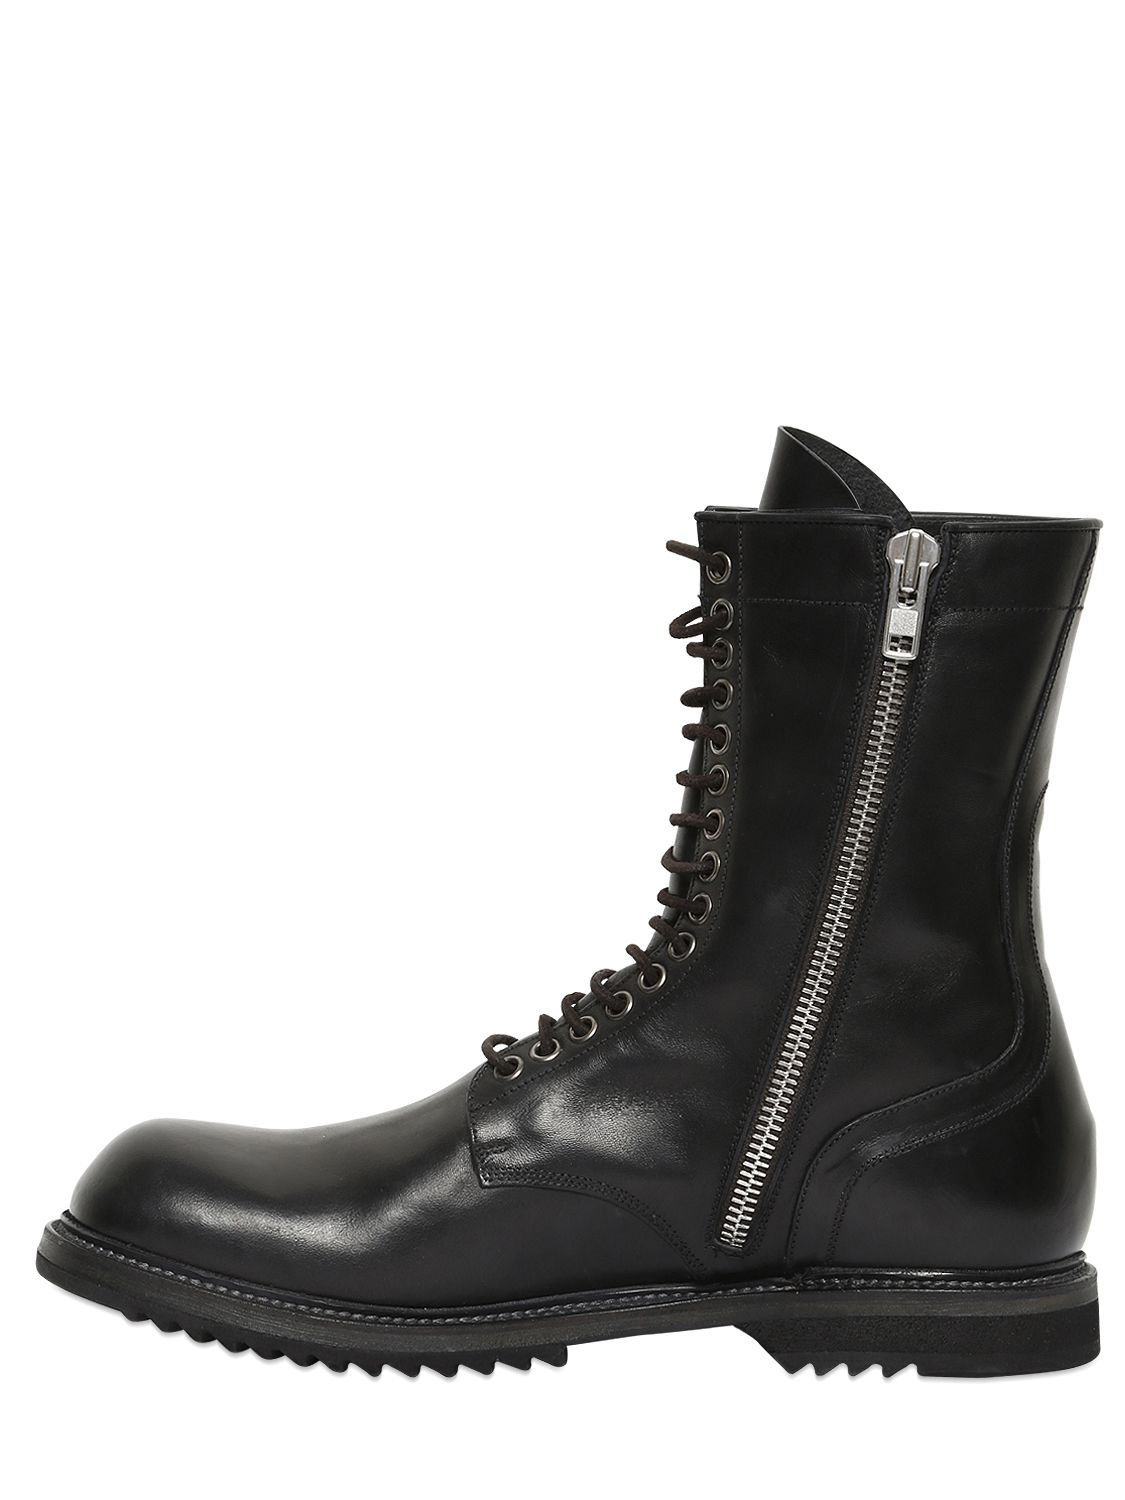 Lyst Rick Owens Horse Leather Combat Boots In Black For Men